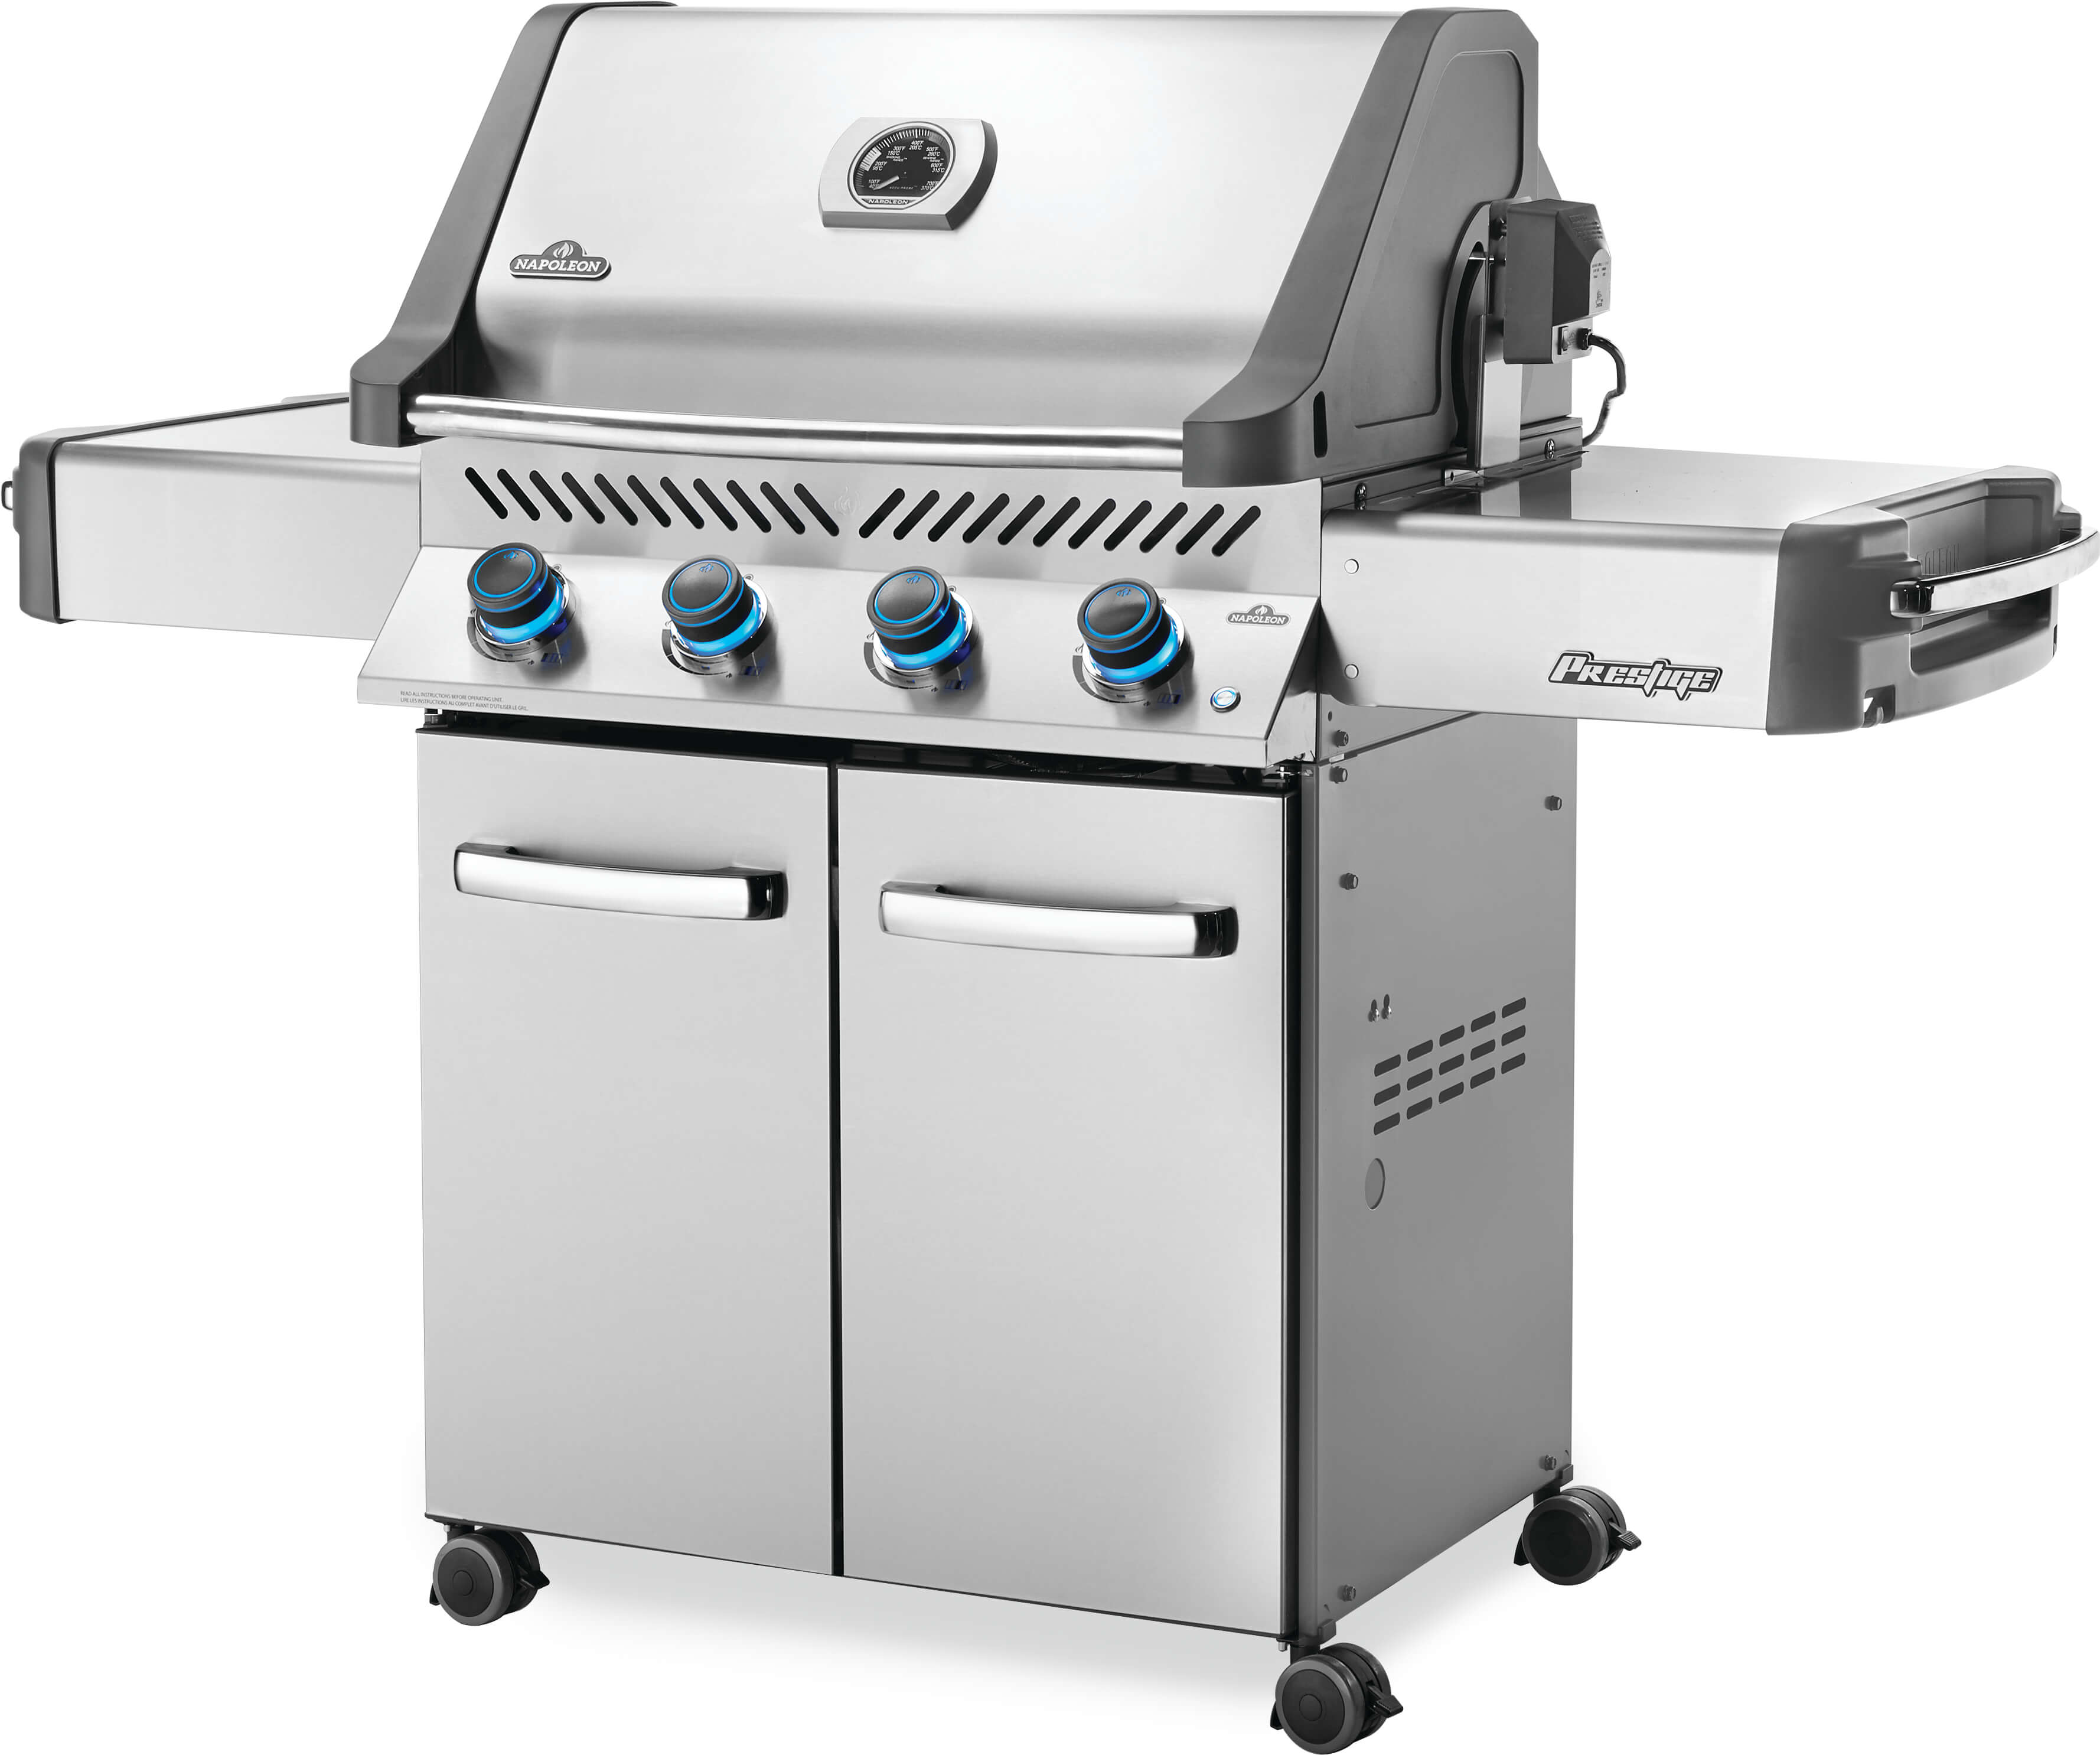 Prestige® 500 Natural Gas Grill, Stainless Steel